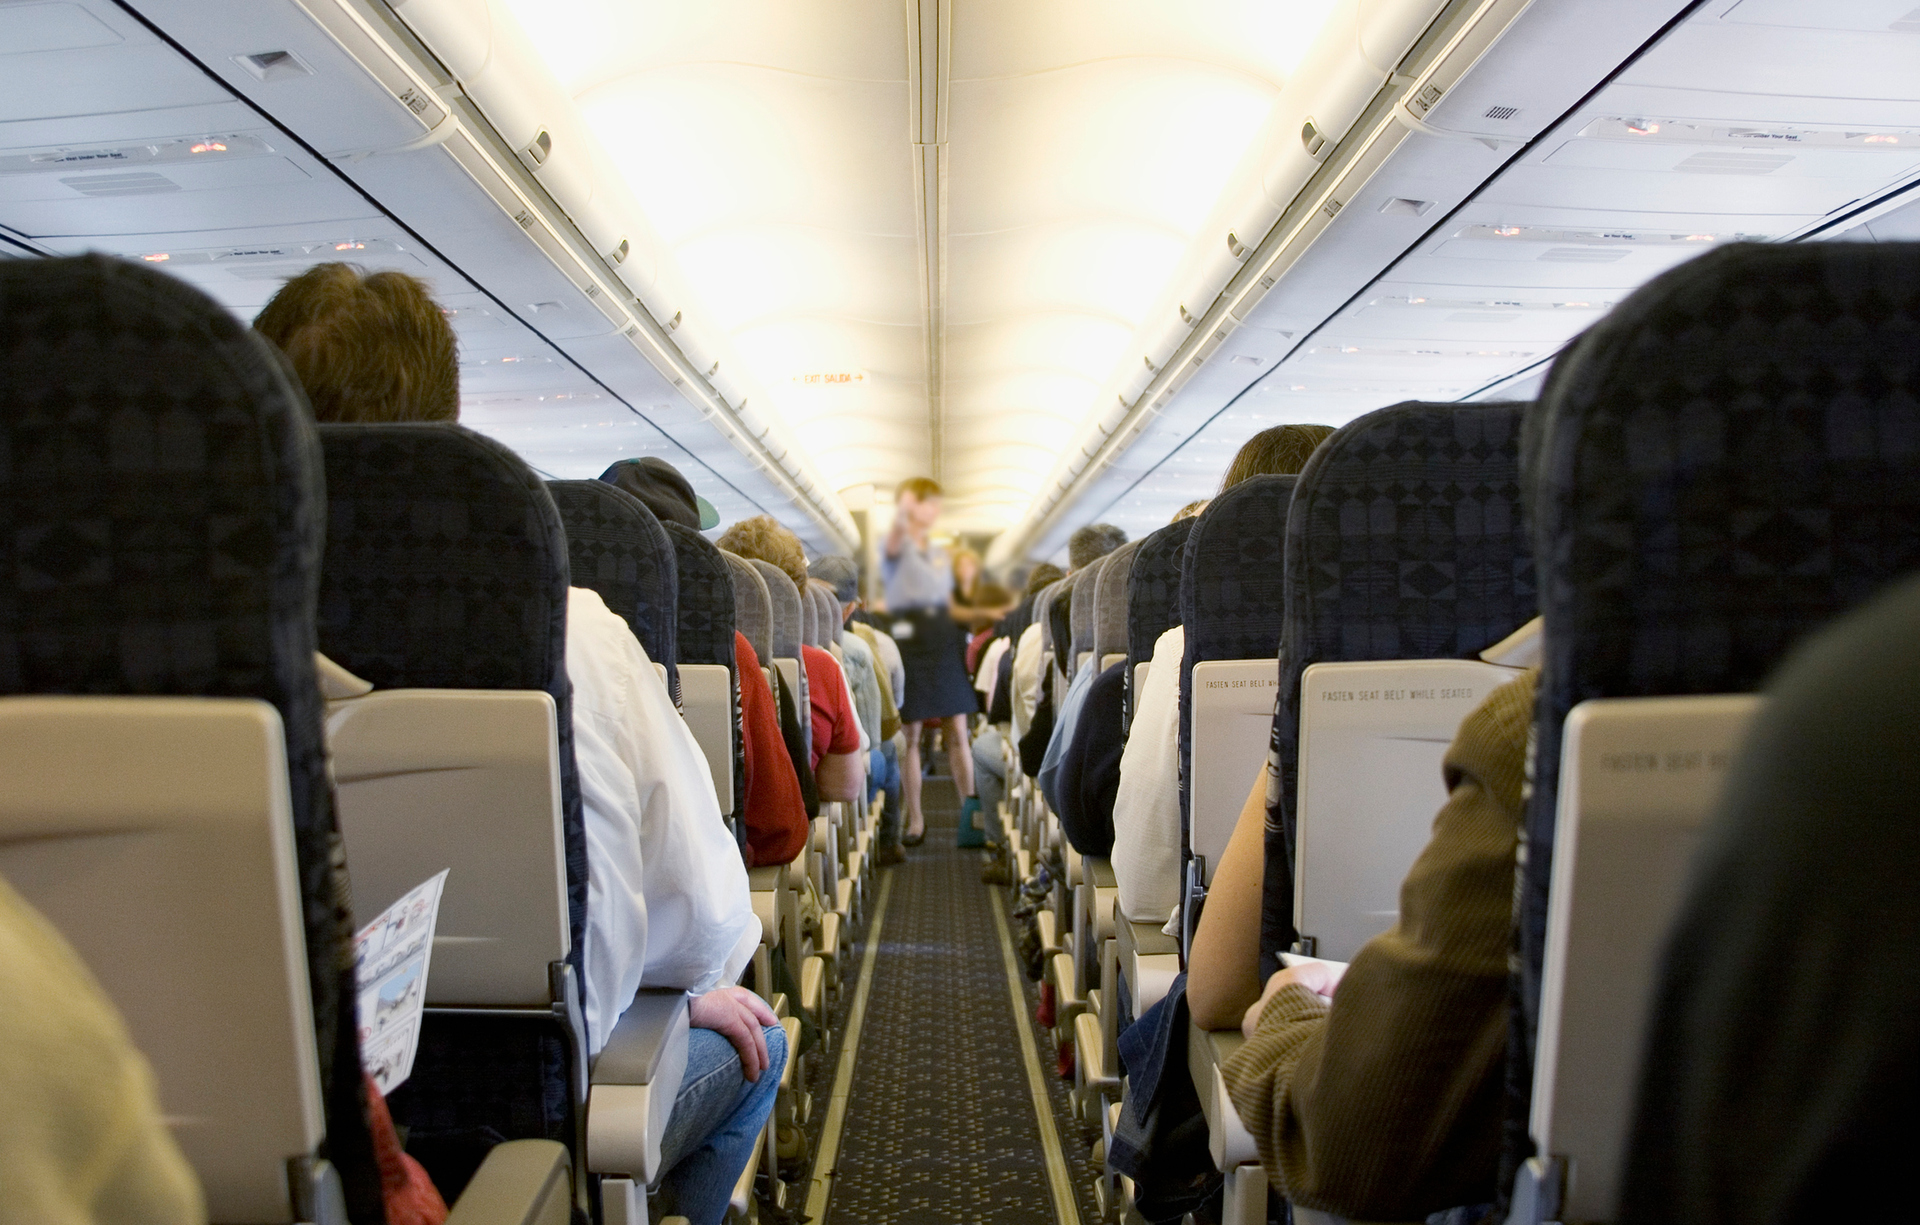 Over a third of flight attendants report abuse by passengers under the influence says study